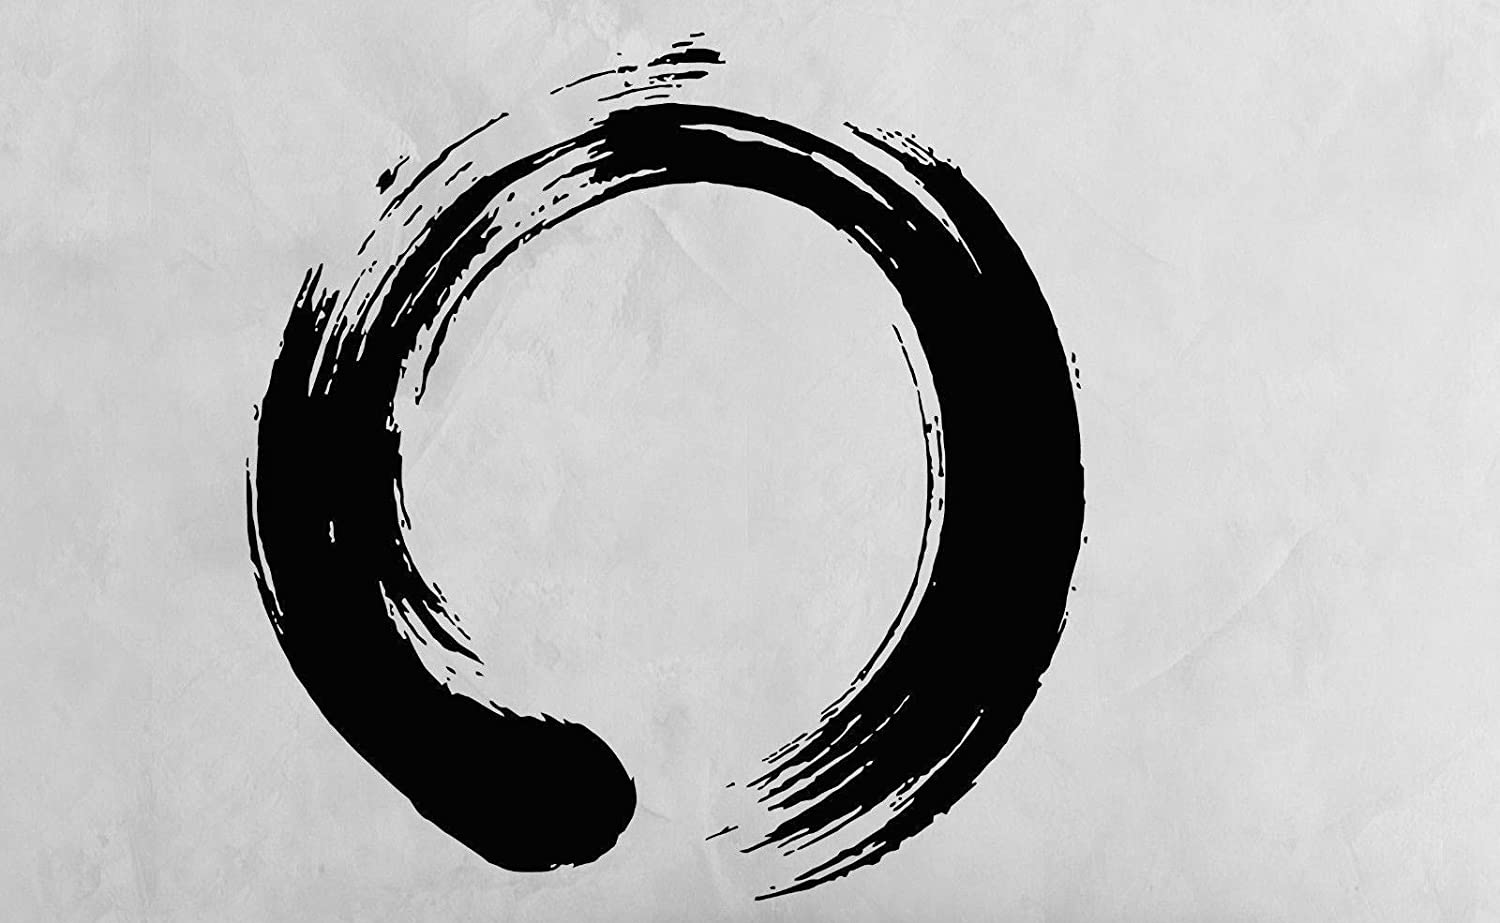 Amazon Com Circle Enso Zen Buddhism Calligraphy Japan Tattoos Tattooing Temporary Tattoos Cute Face Stickers One Sheet Of A4 Paper Toys Games